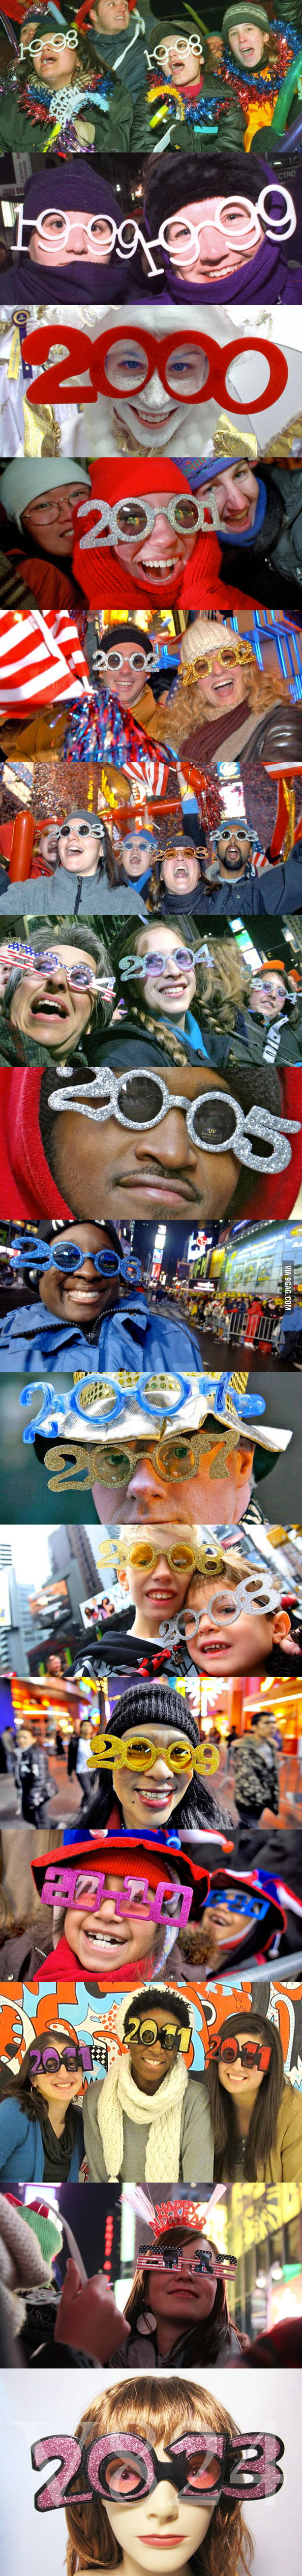 New Year Glasses (1998 - 2013)